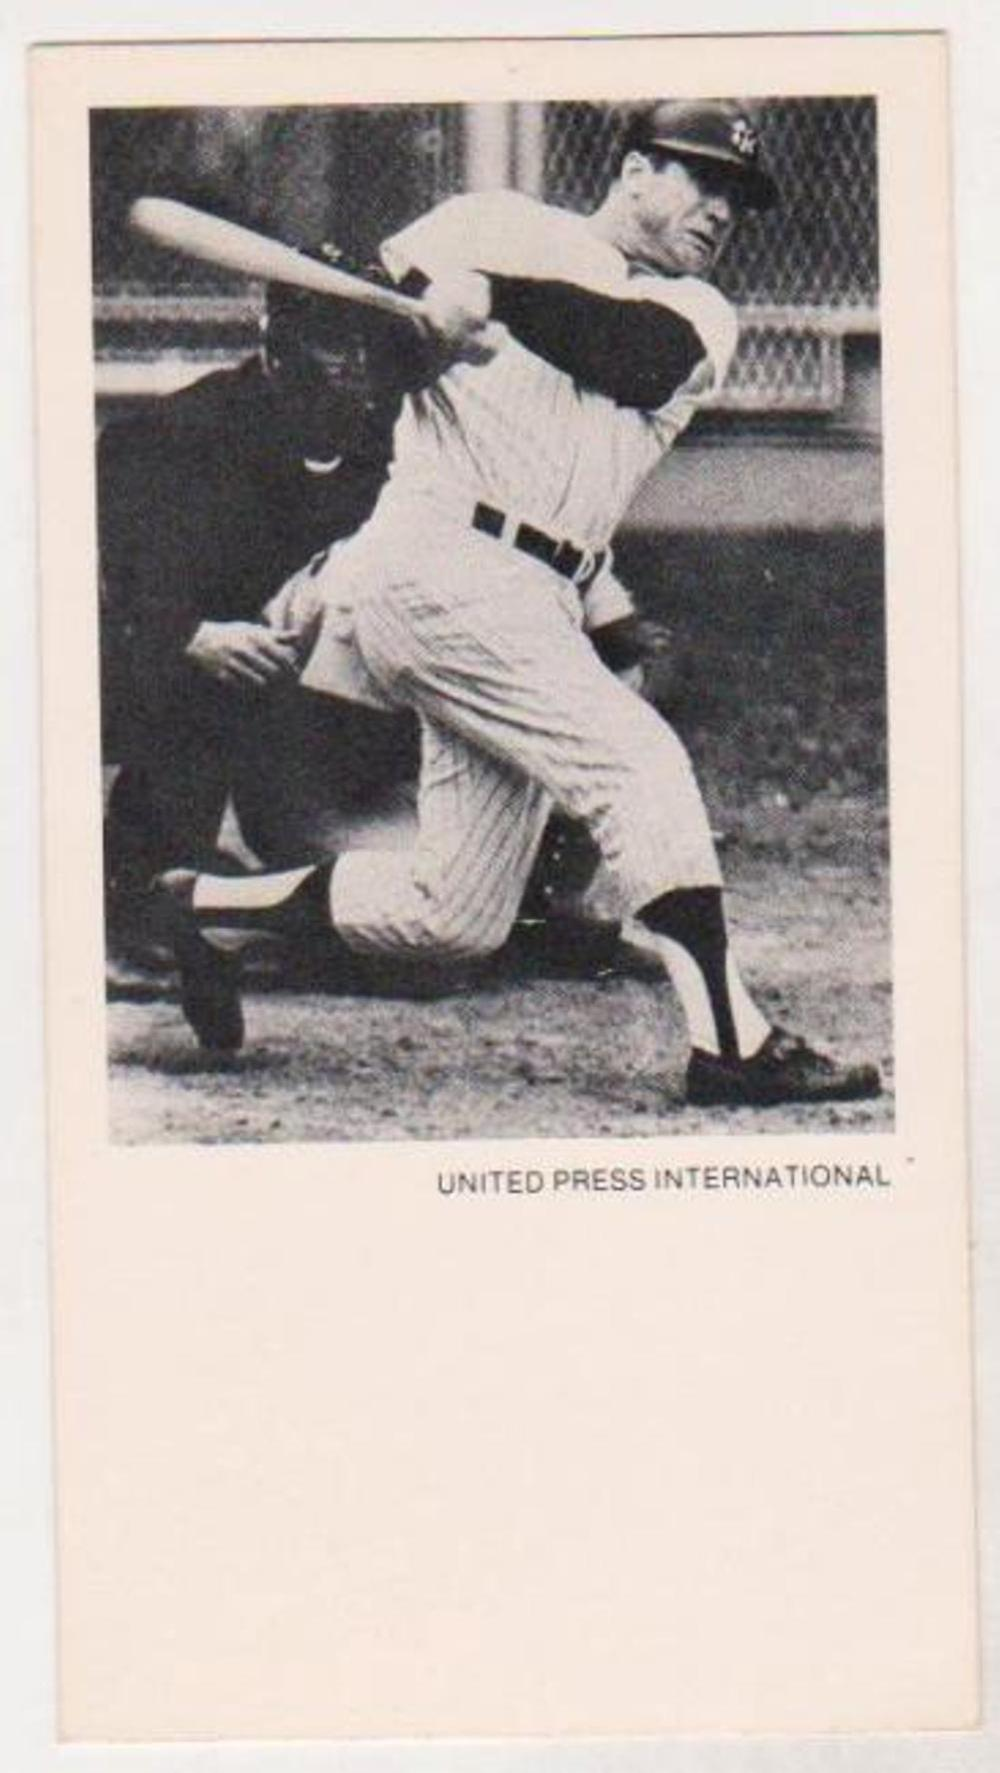 1979 UPI Mickey Mantle Greatest Moments in Sports History Card With Record